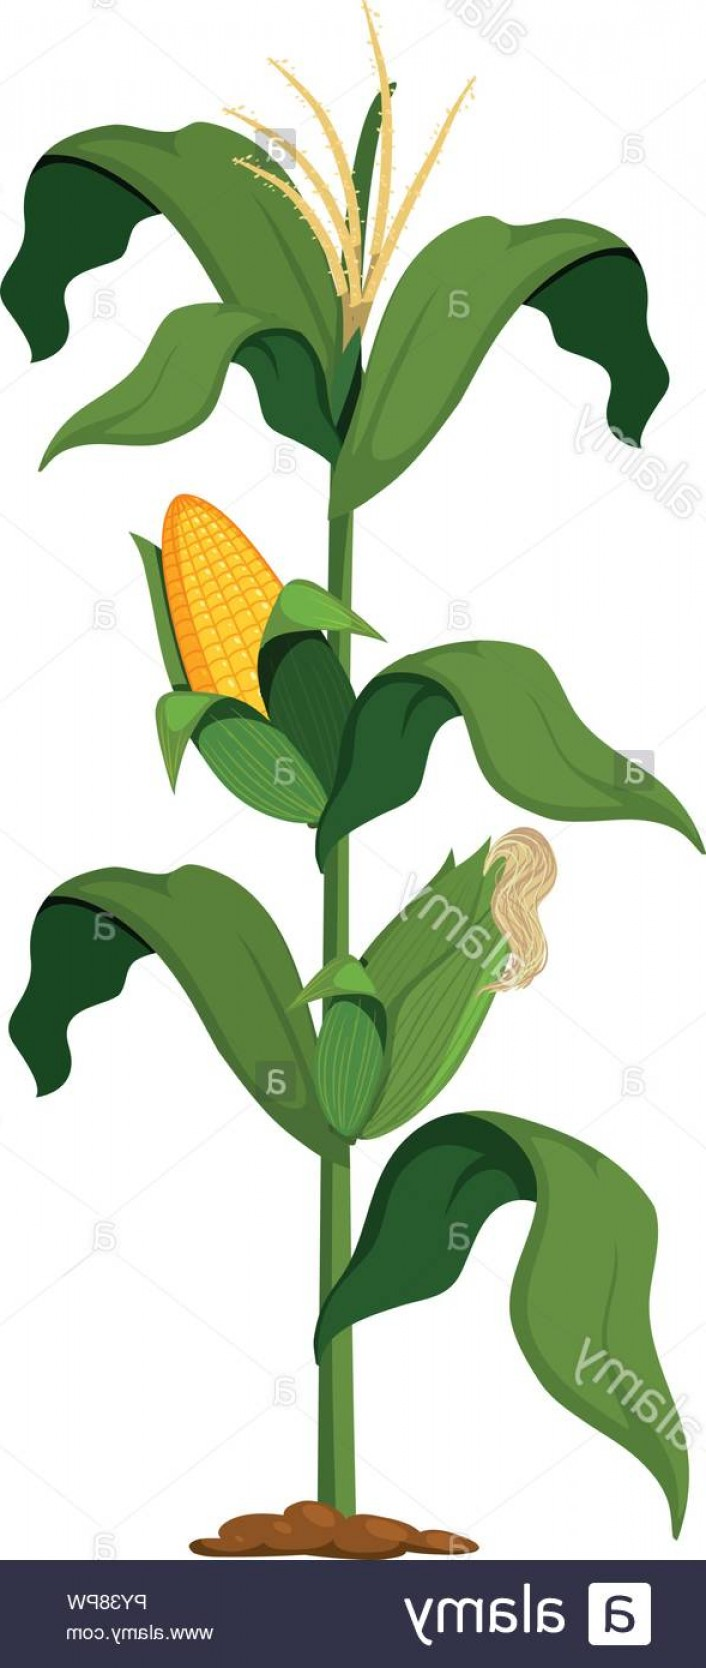 Maize Vector Tree: Corn Plant On White Background Illustration Image